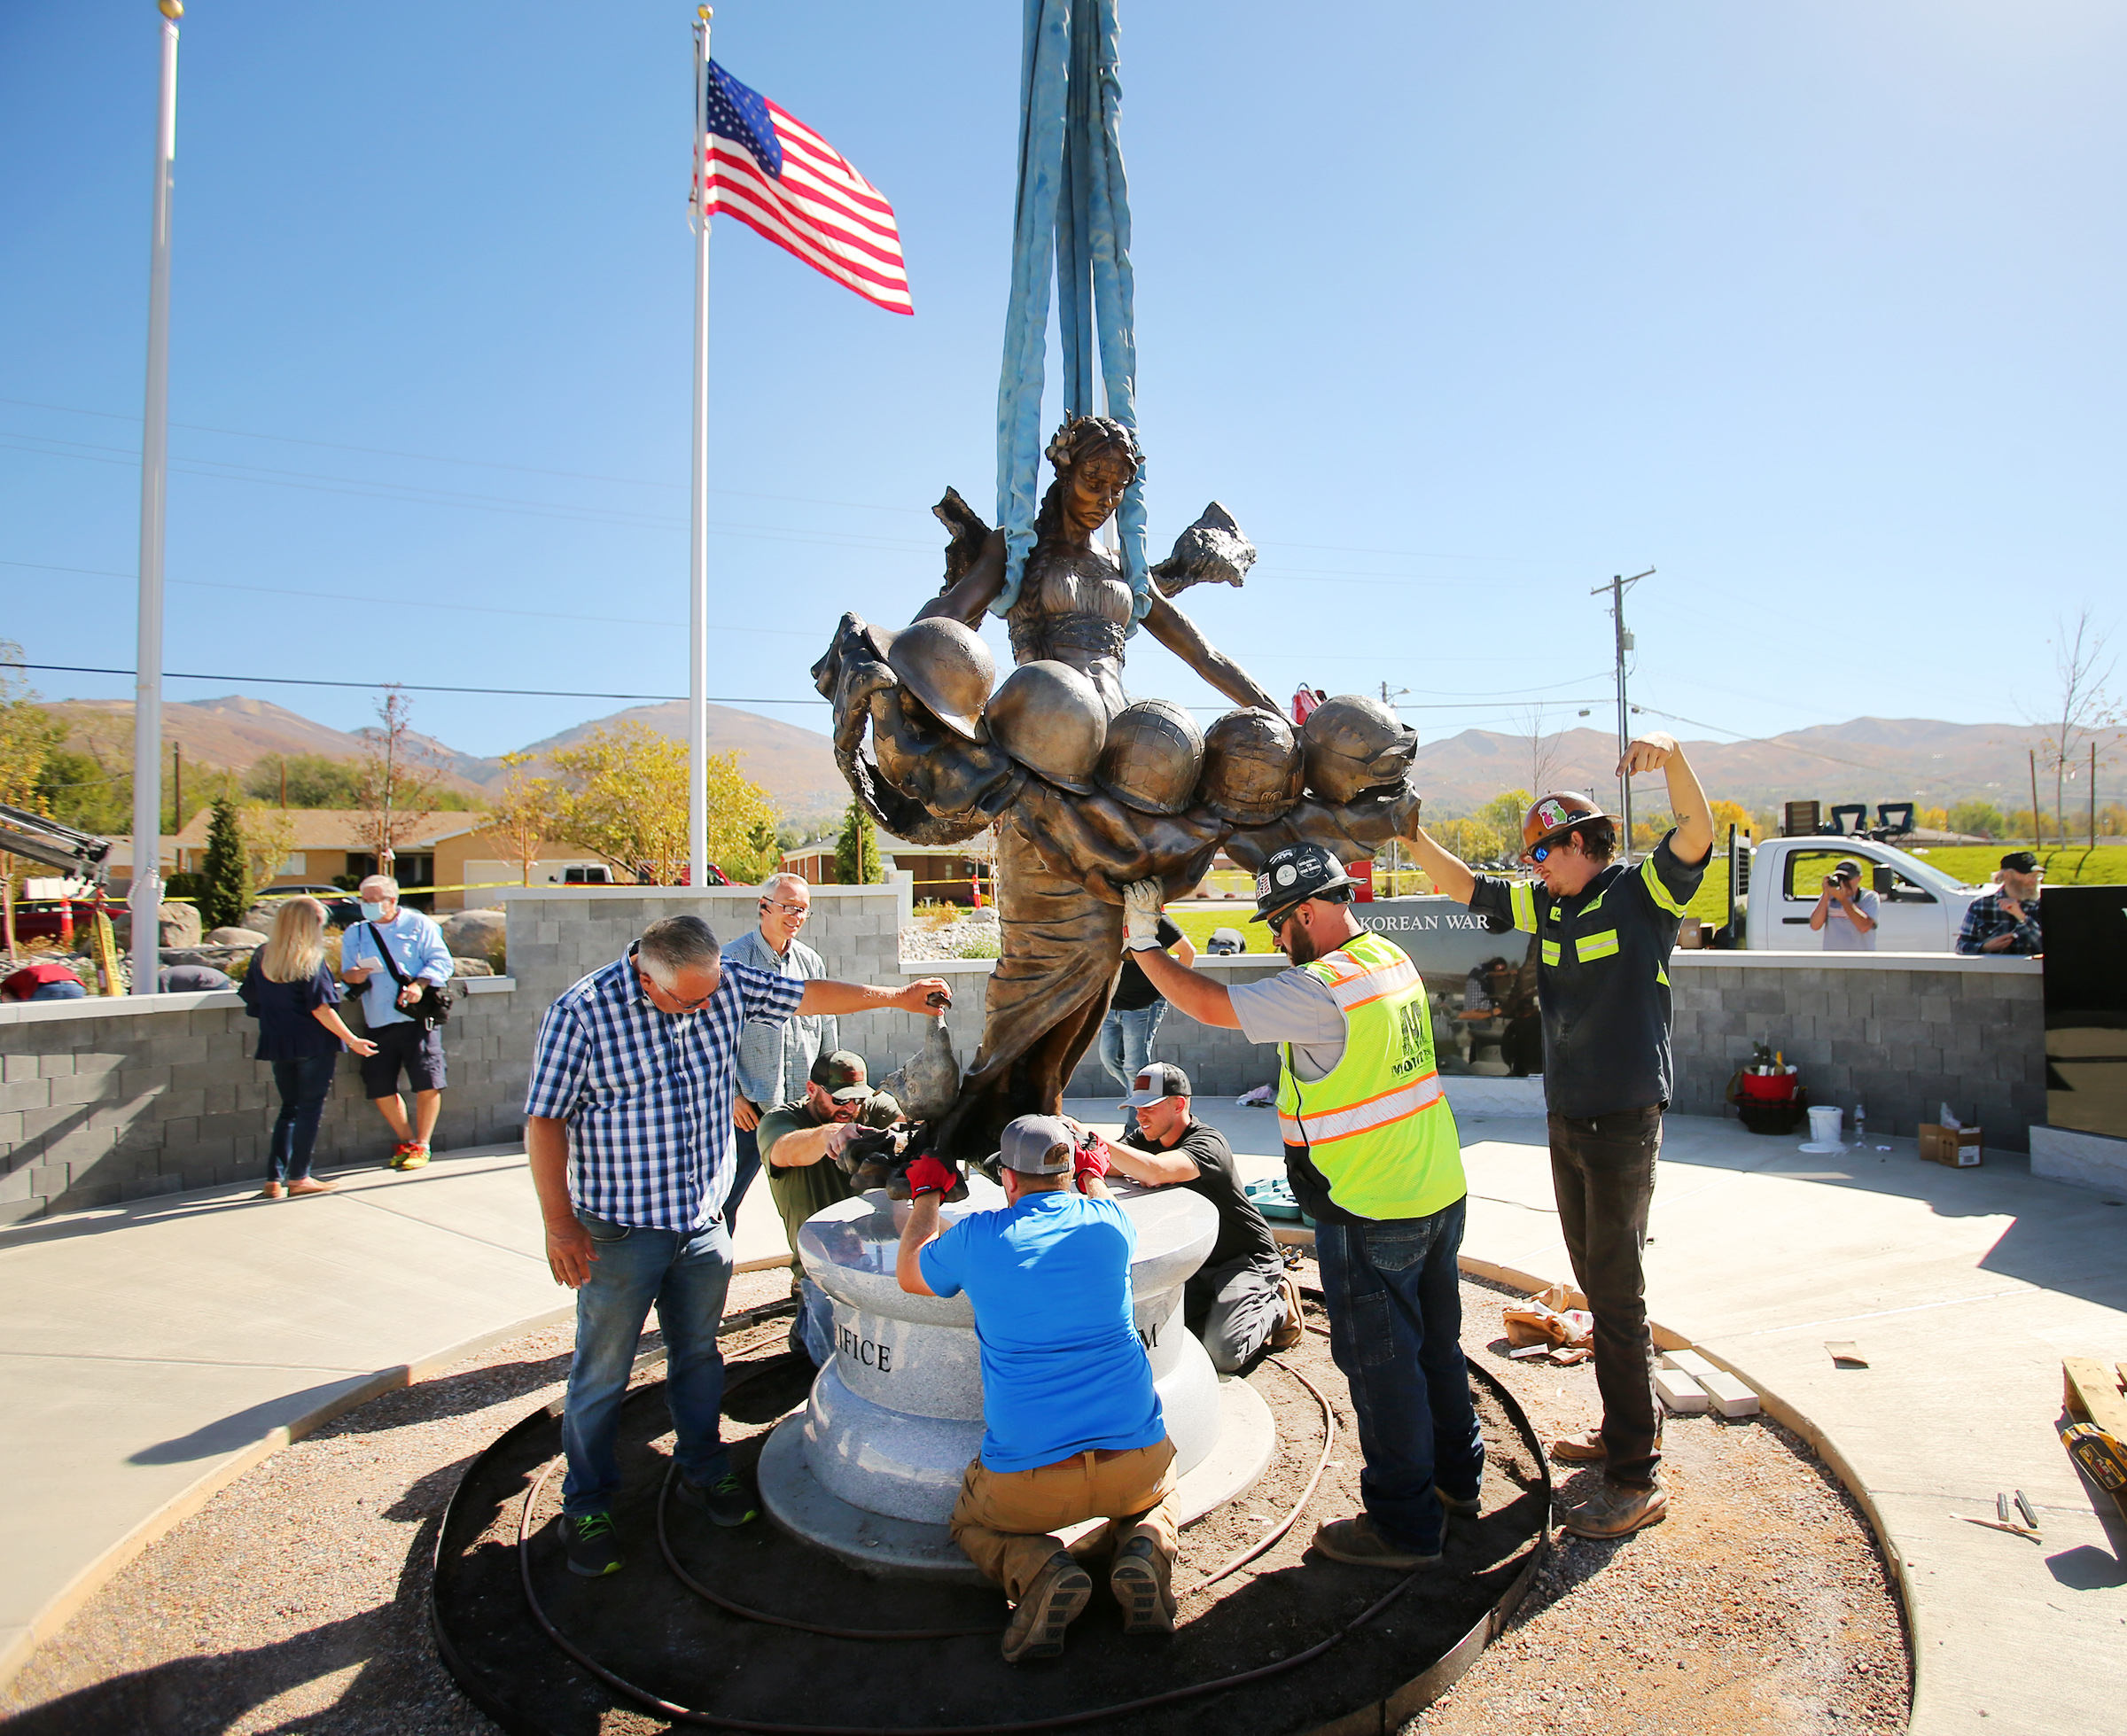 Workers install a statue of Columbia, the female personification of the United States, at Bountiful Veterans Park in Bountiful on Tuesday, Oct. 13, 2020. The 7-foot statue is surrounded by various military monuments and granite benches remembering veterans and the battles they fought.